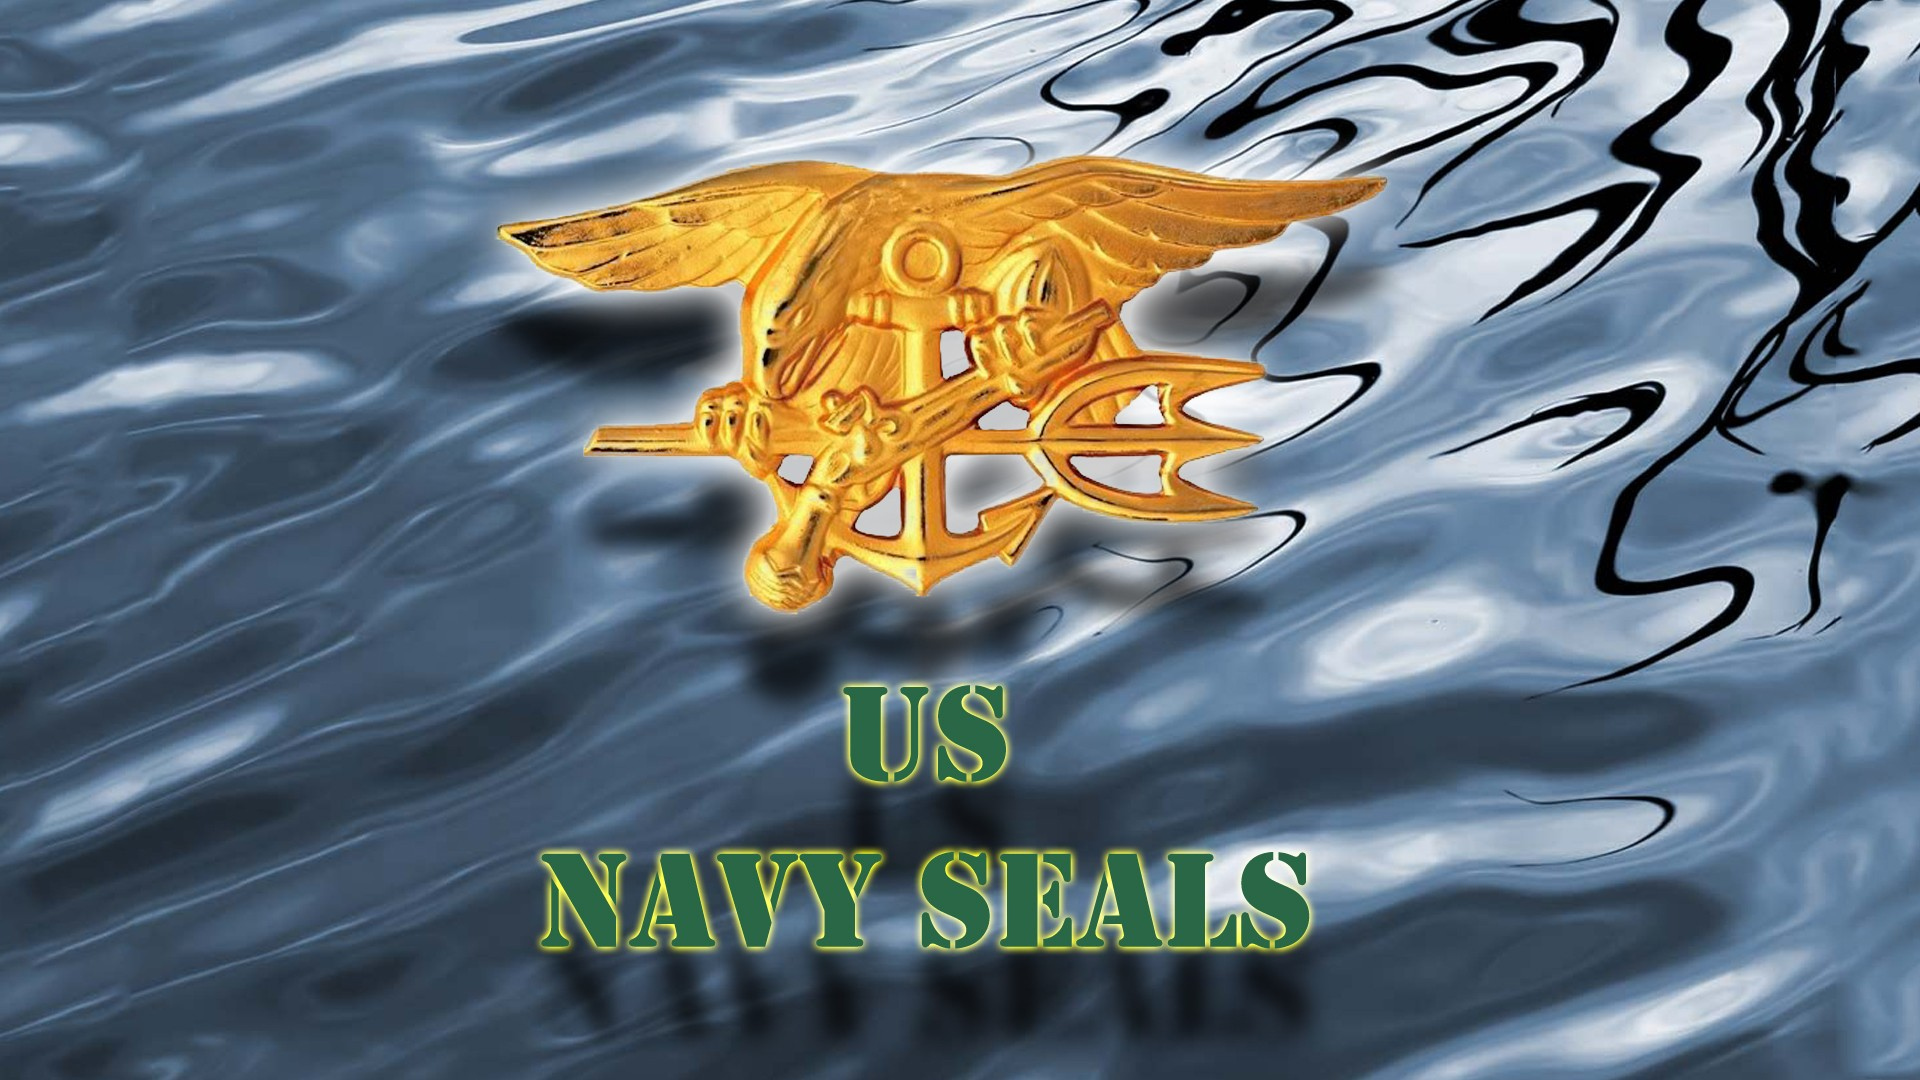 Militarysoldiers army military navy navy seals 2200x1366 wallpaper 1920x1080